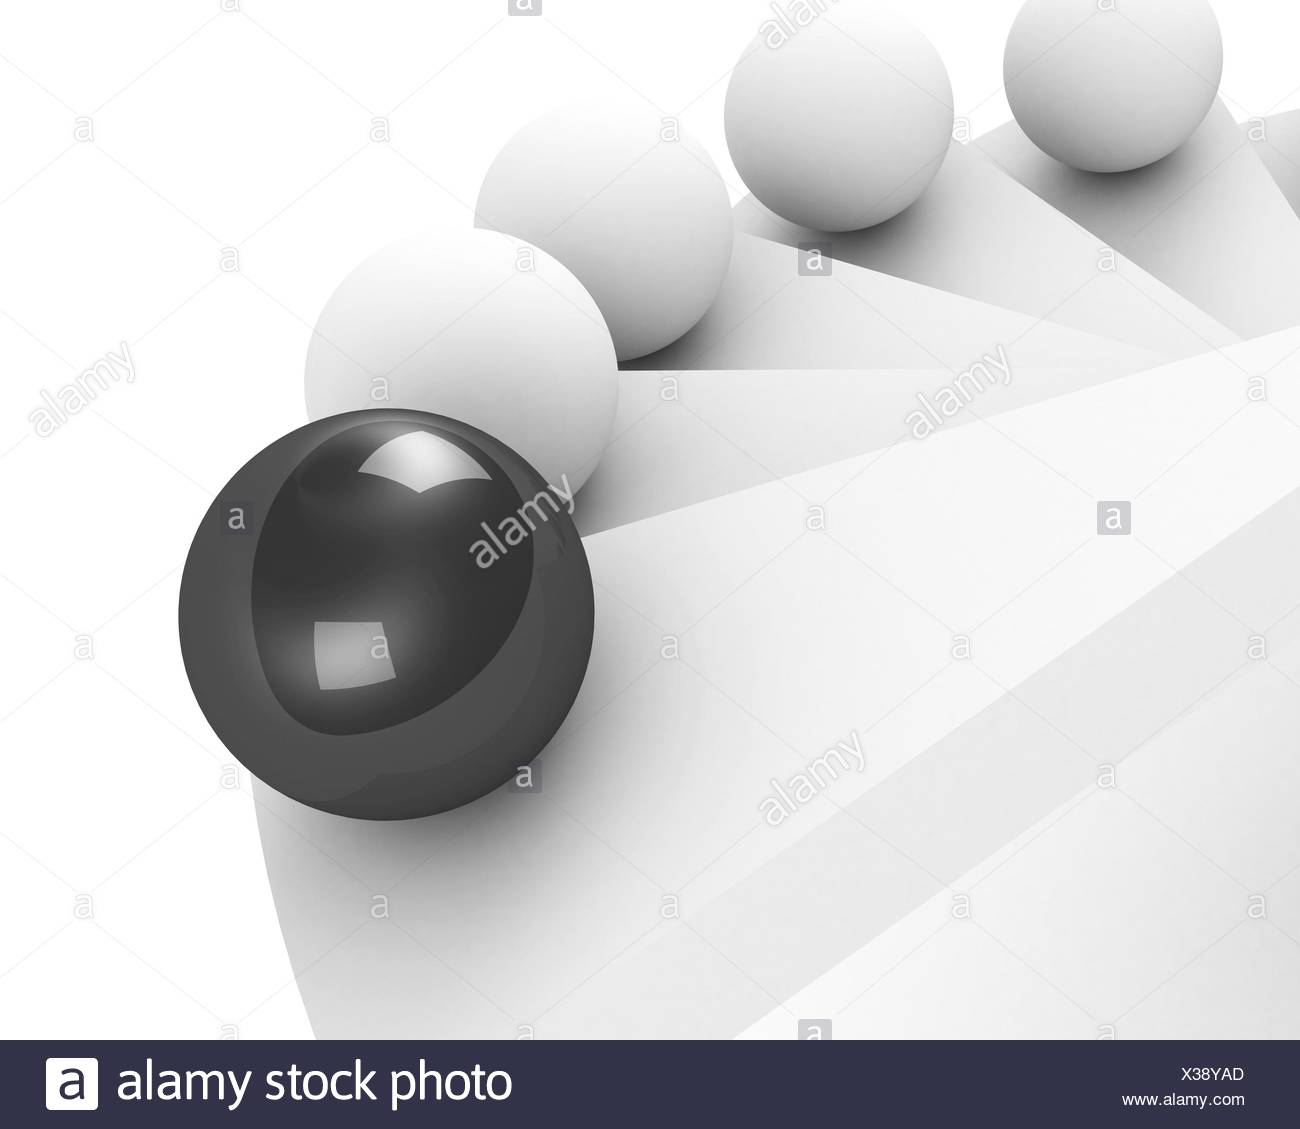 stairs up to success. leadership concept. black - Stock Image